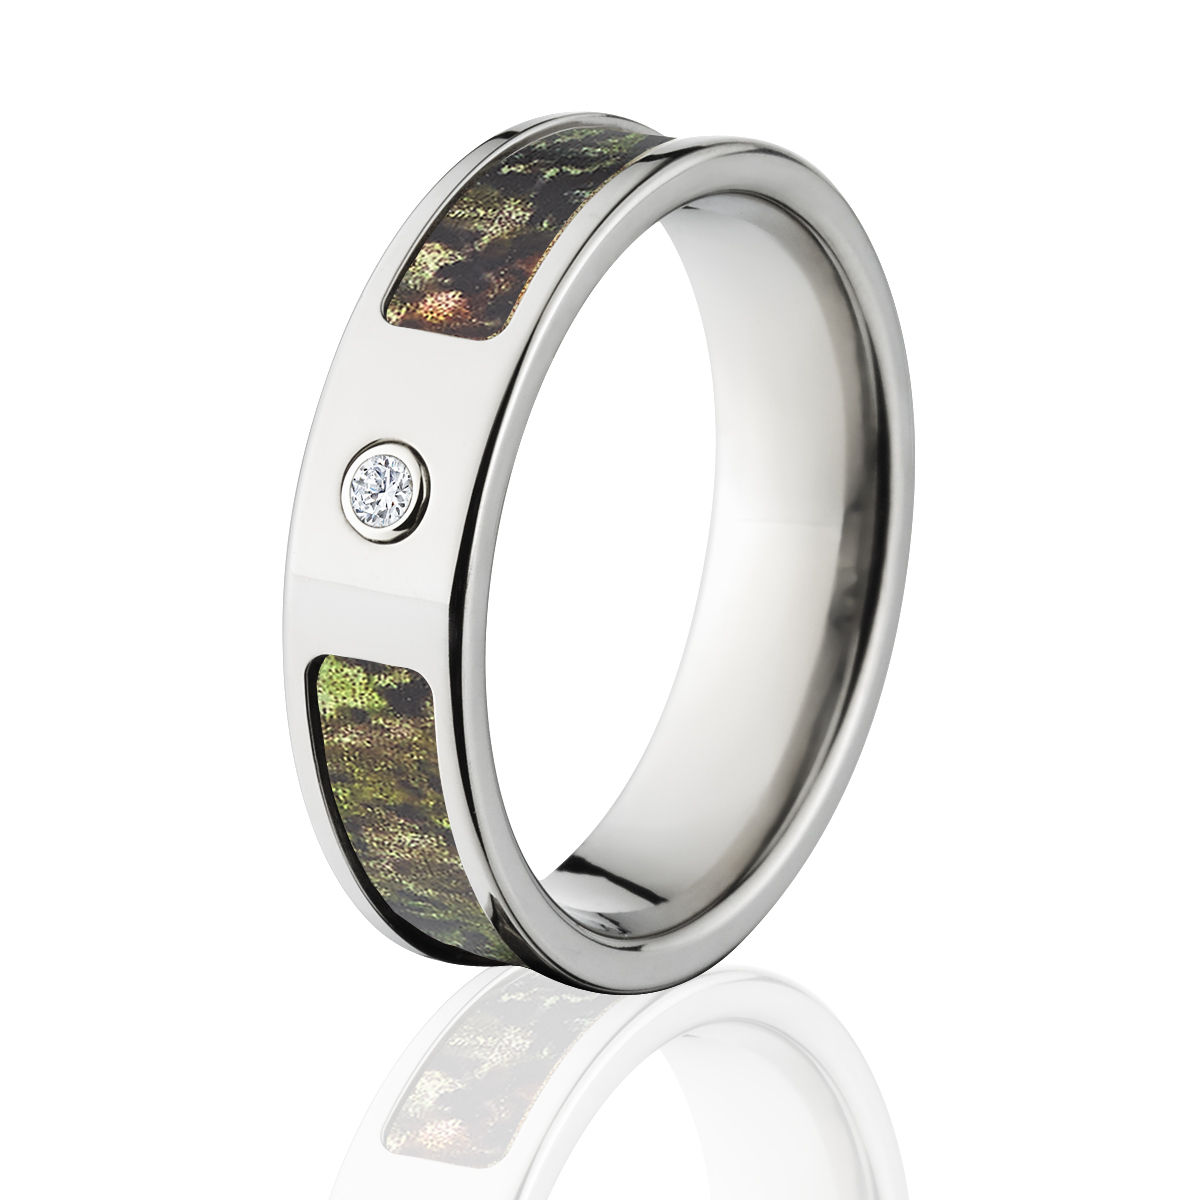 mossy oak obsession camo rings camouflage wedding bands obsession titanium camo ring w diamond an - Wedding Rings Camo